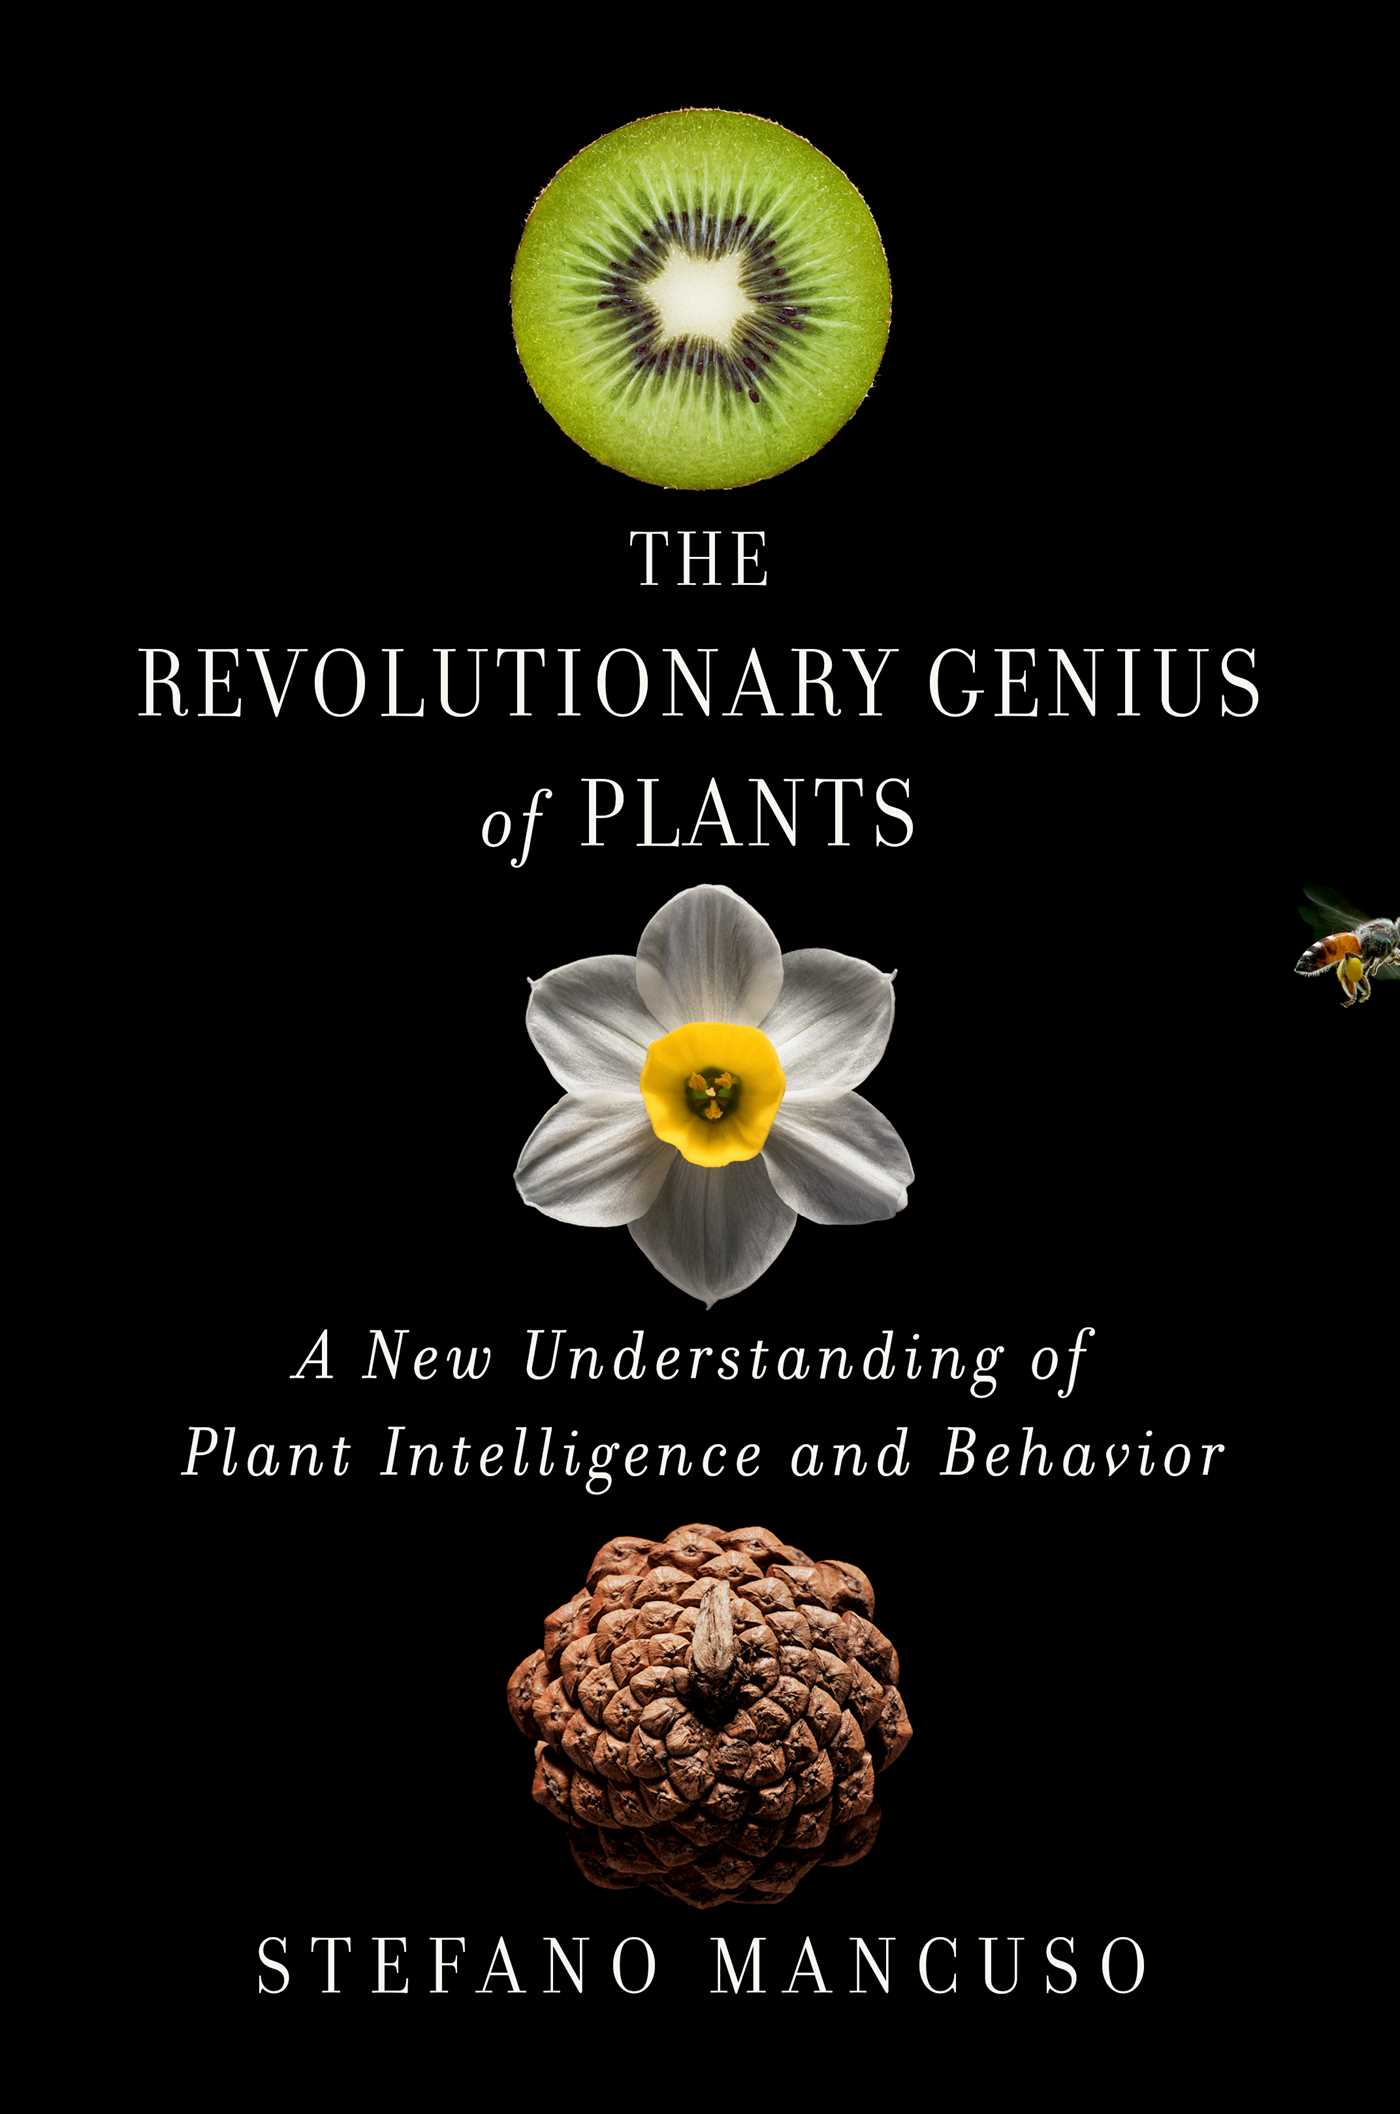 The revolutionary genius of plants 9781501187858 hr